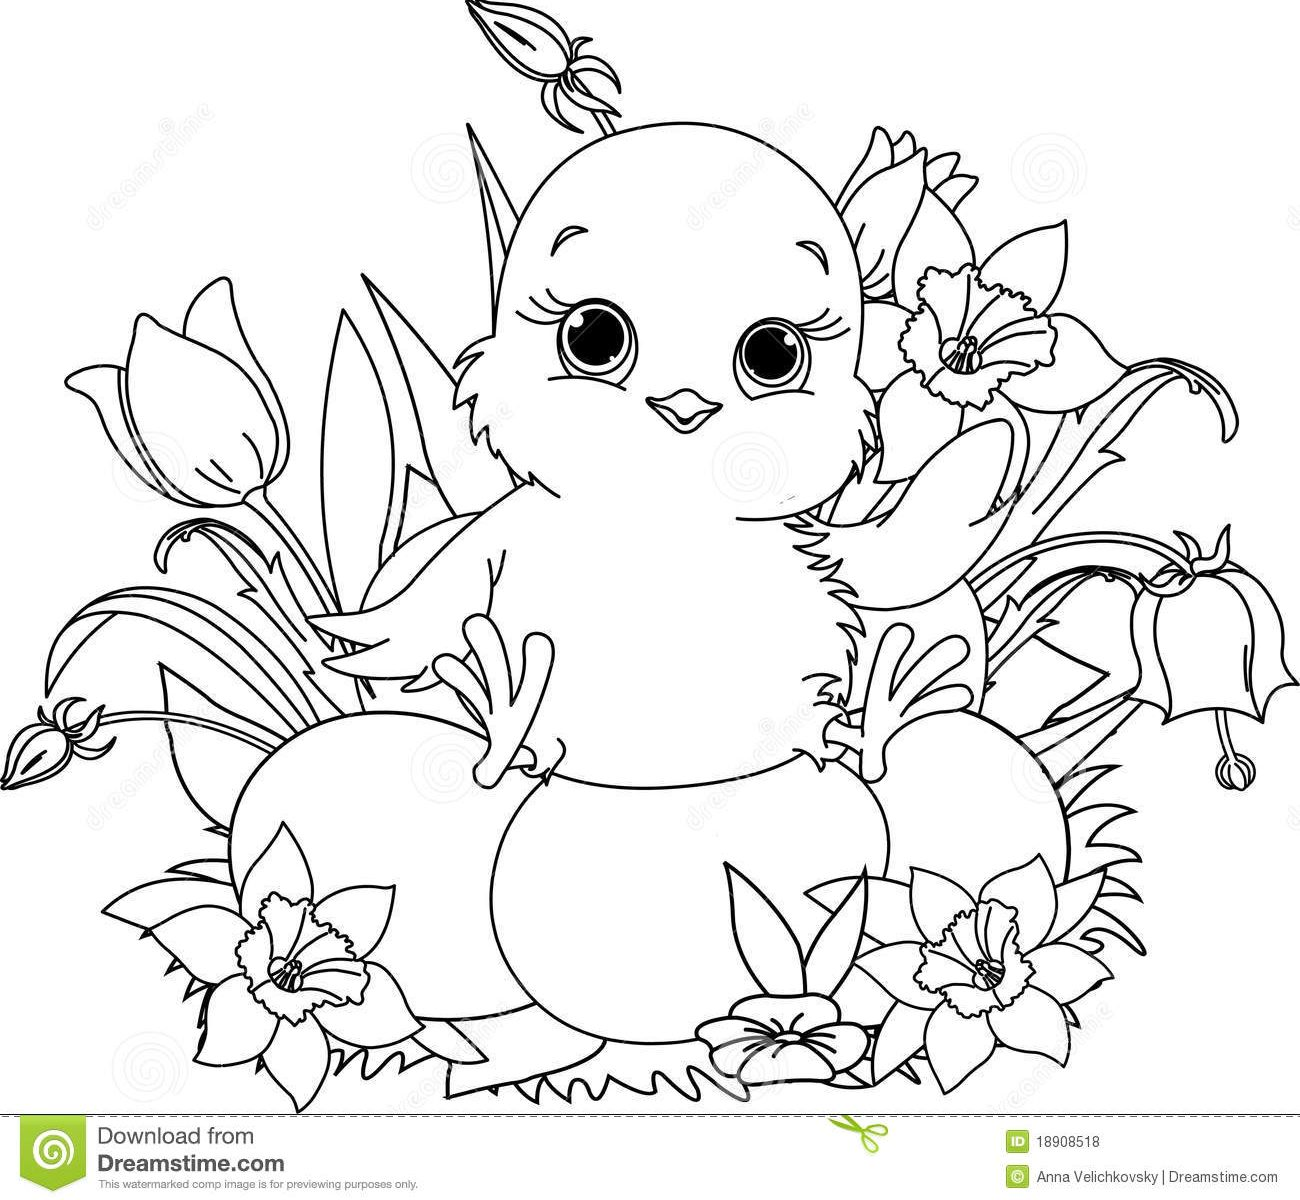 Baby Chick Drawing at GetDrawings.com | Free for personal use Baby ...